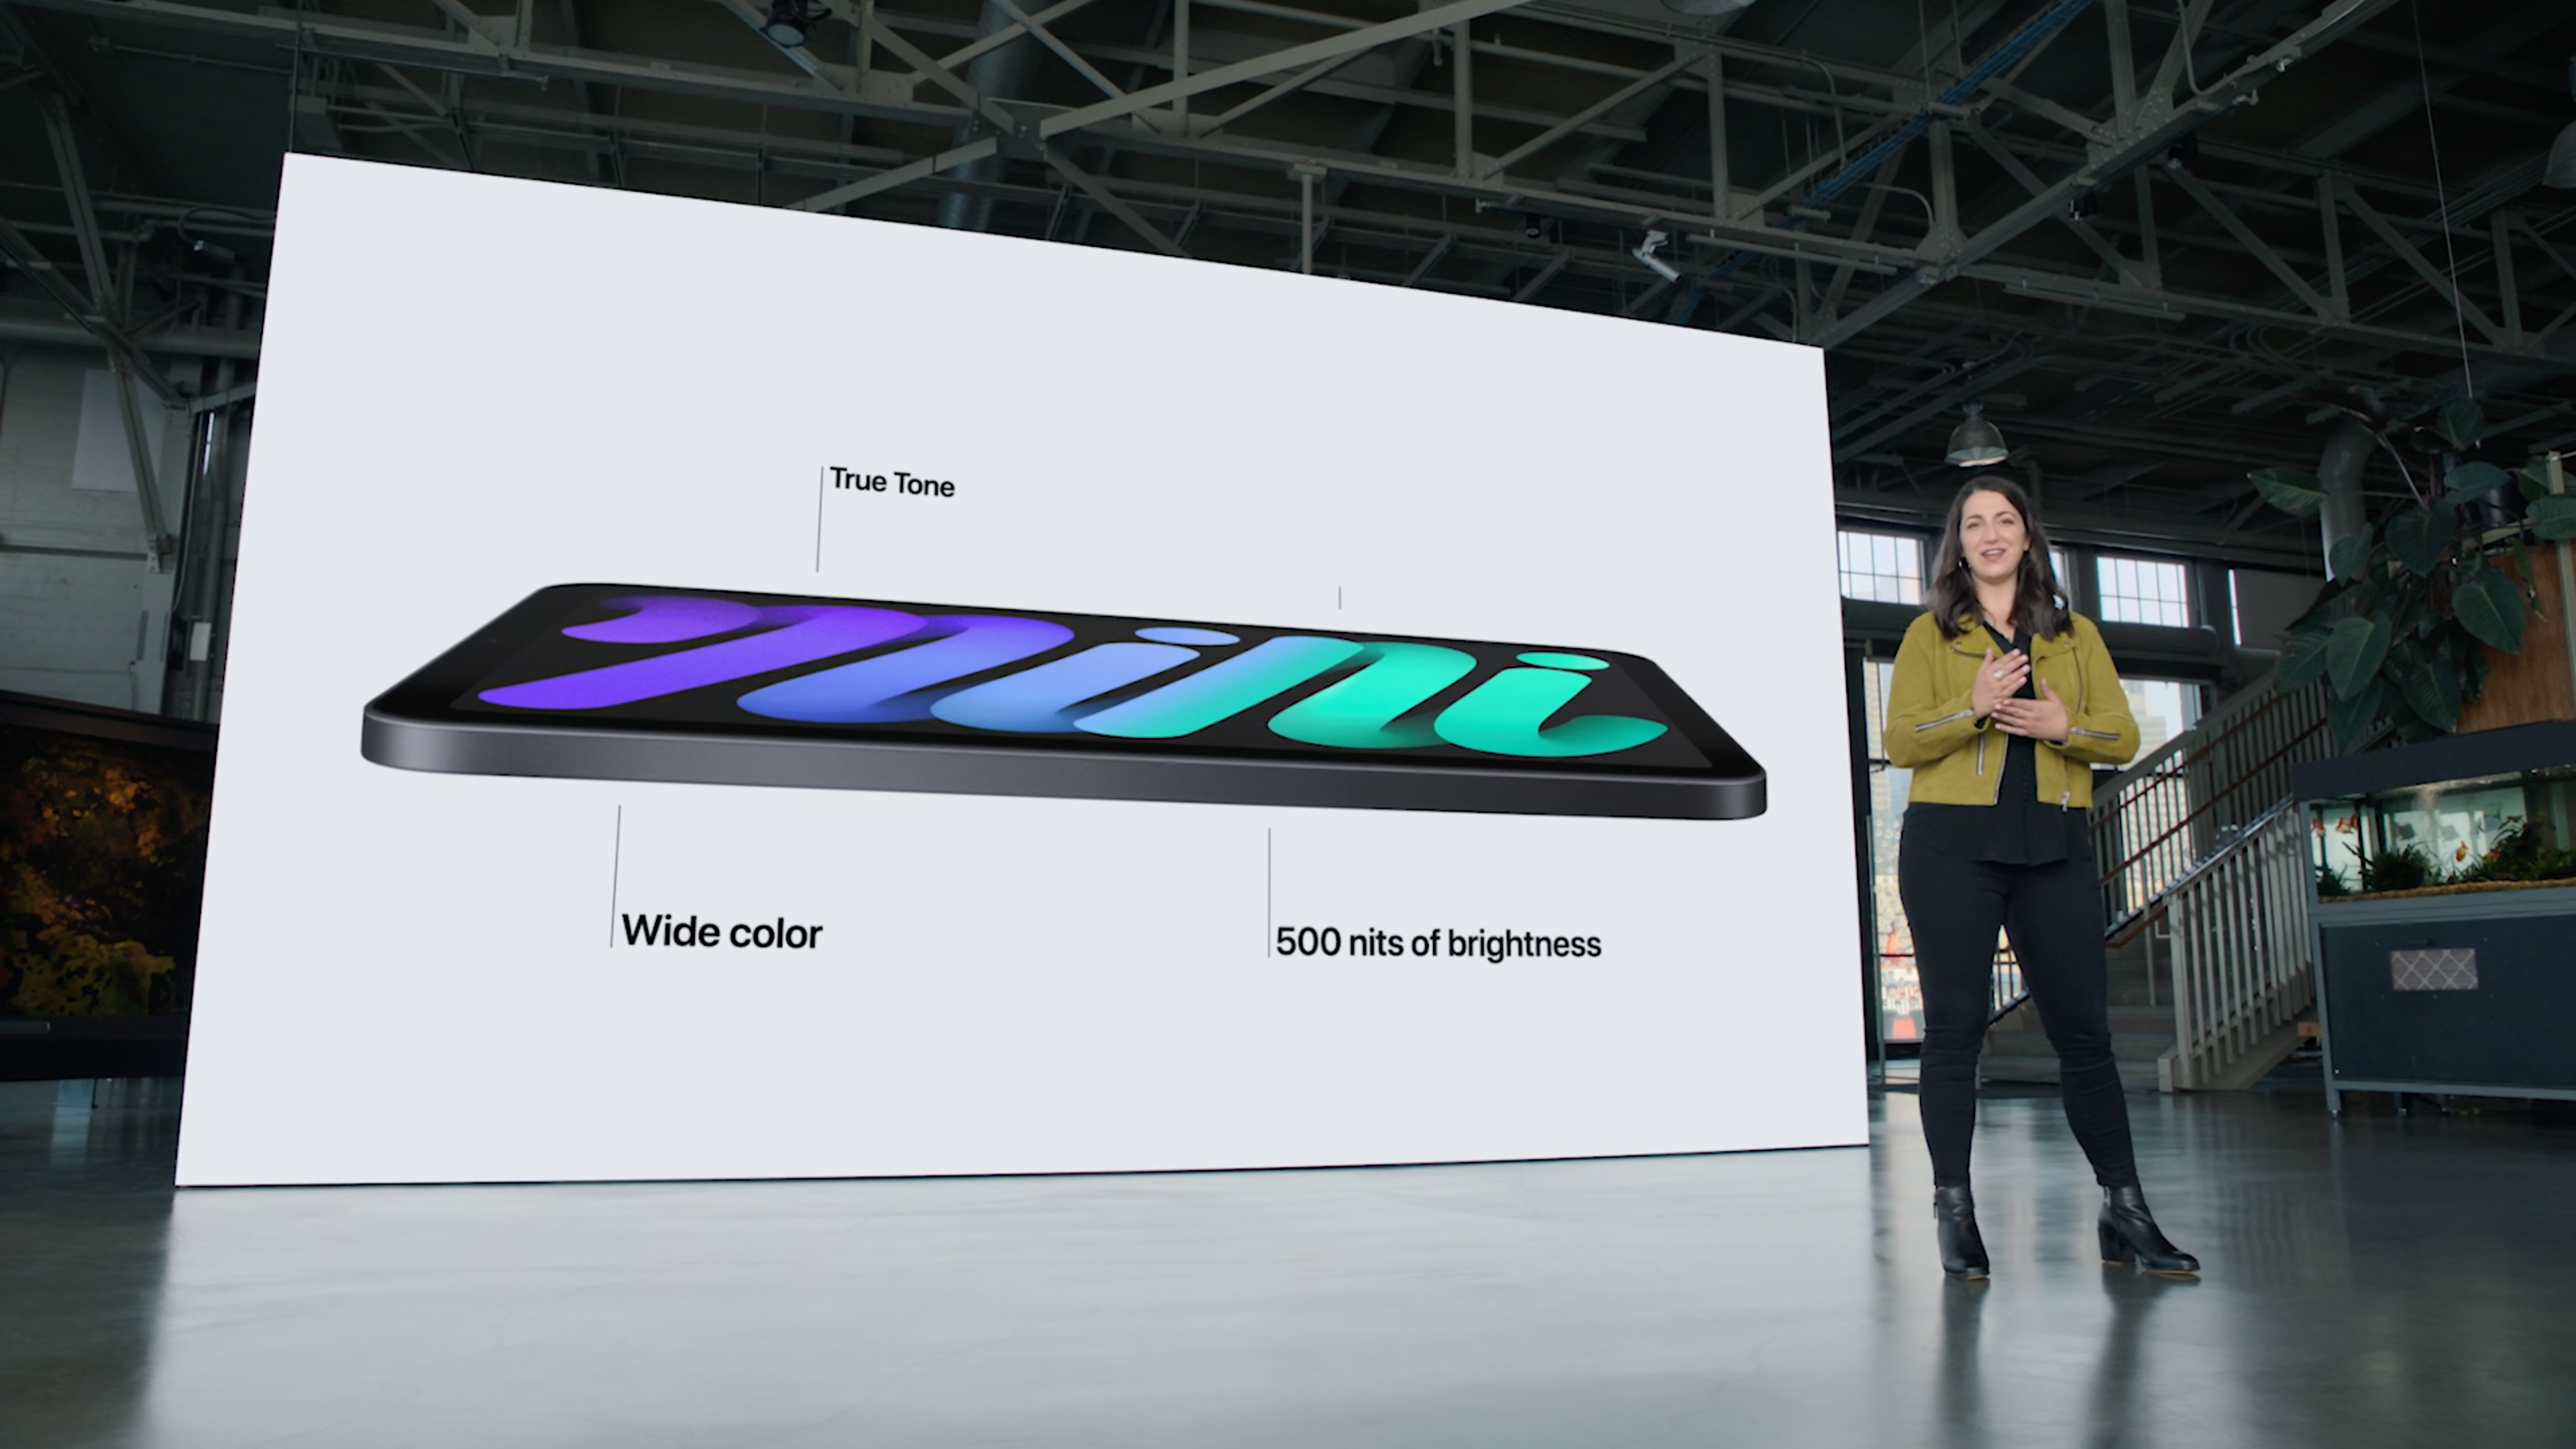 Apple unveils redesigned iPad Mini with 8.3-inch display and 5G connectivity